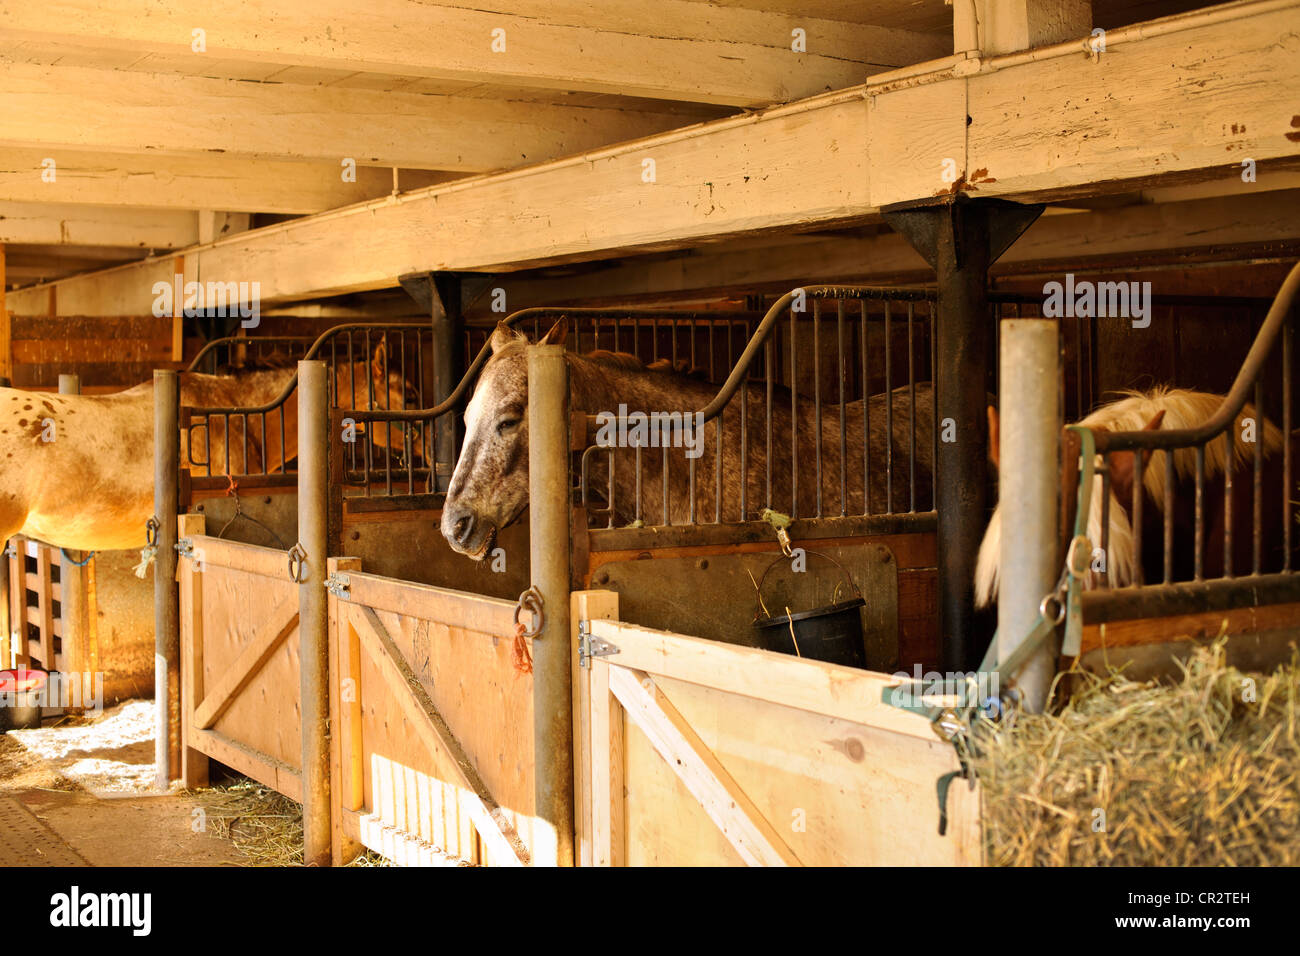 Horse stables with wooden doors and horses - Stock Image